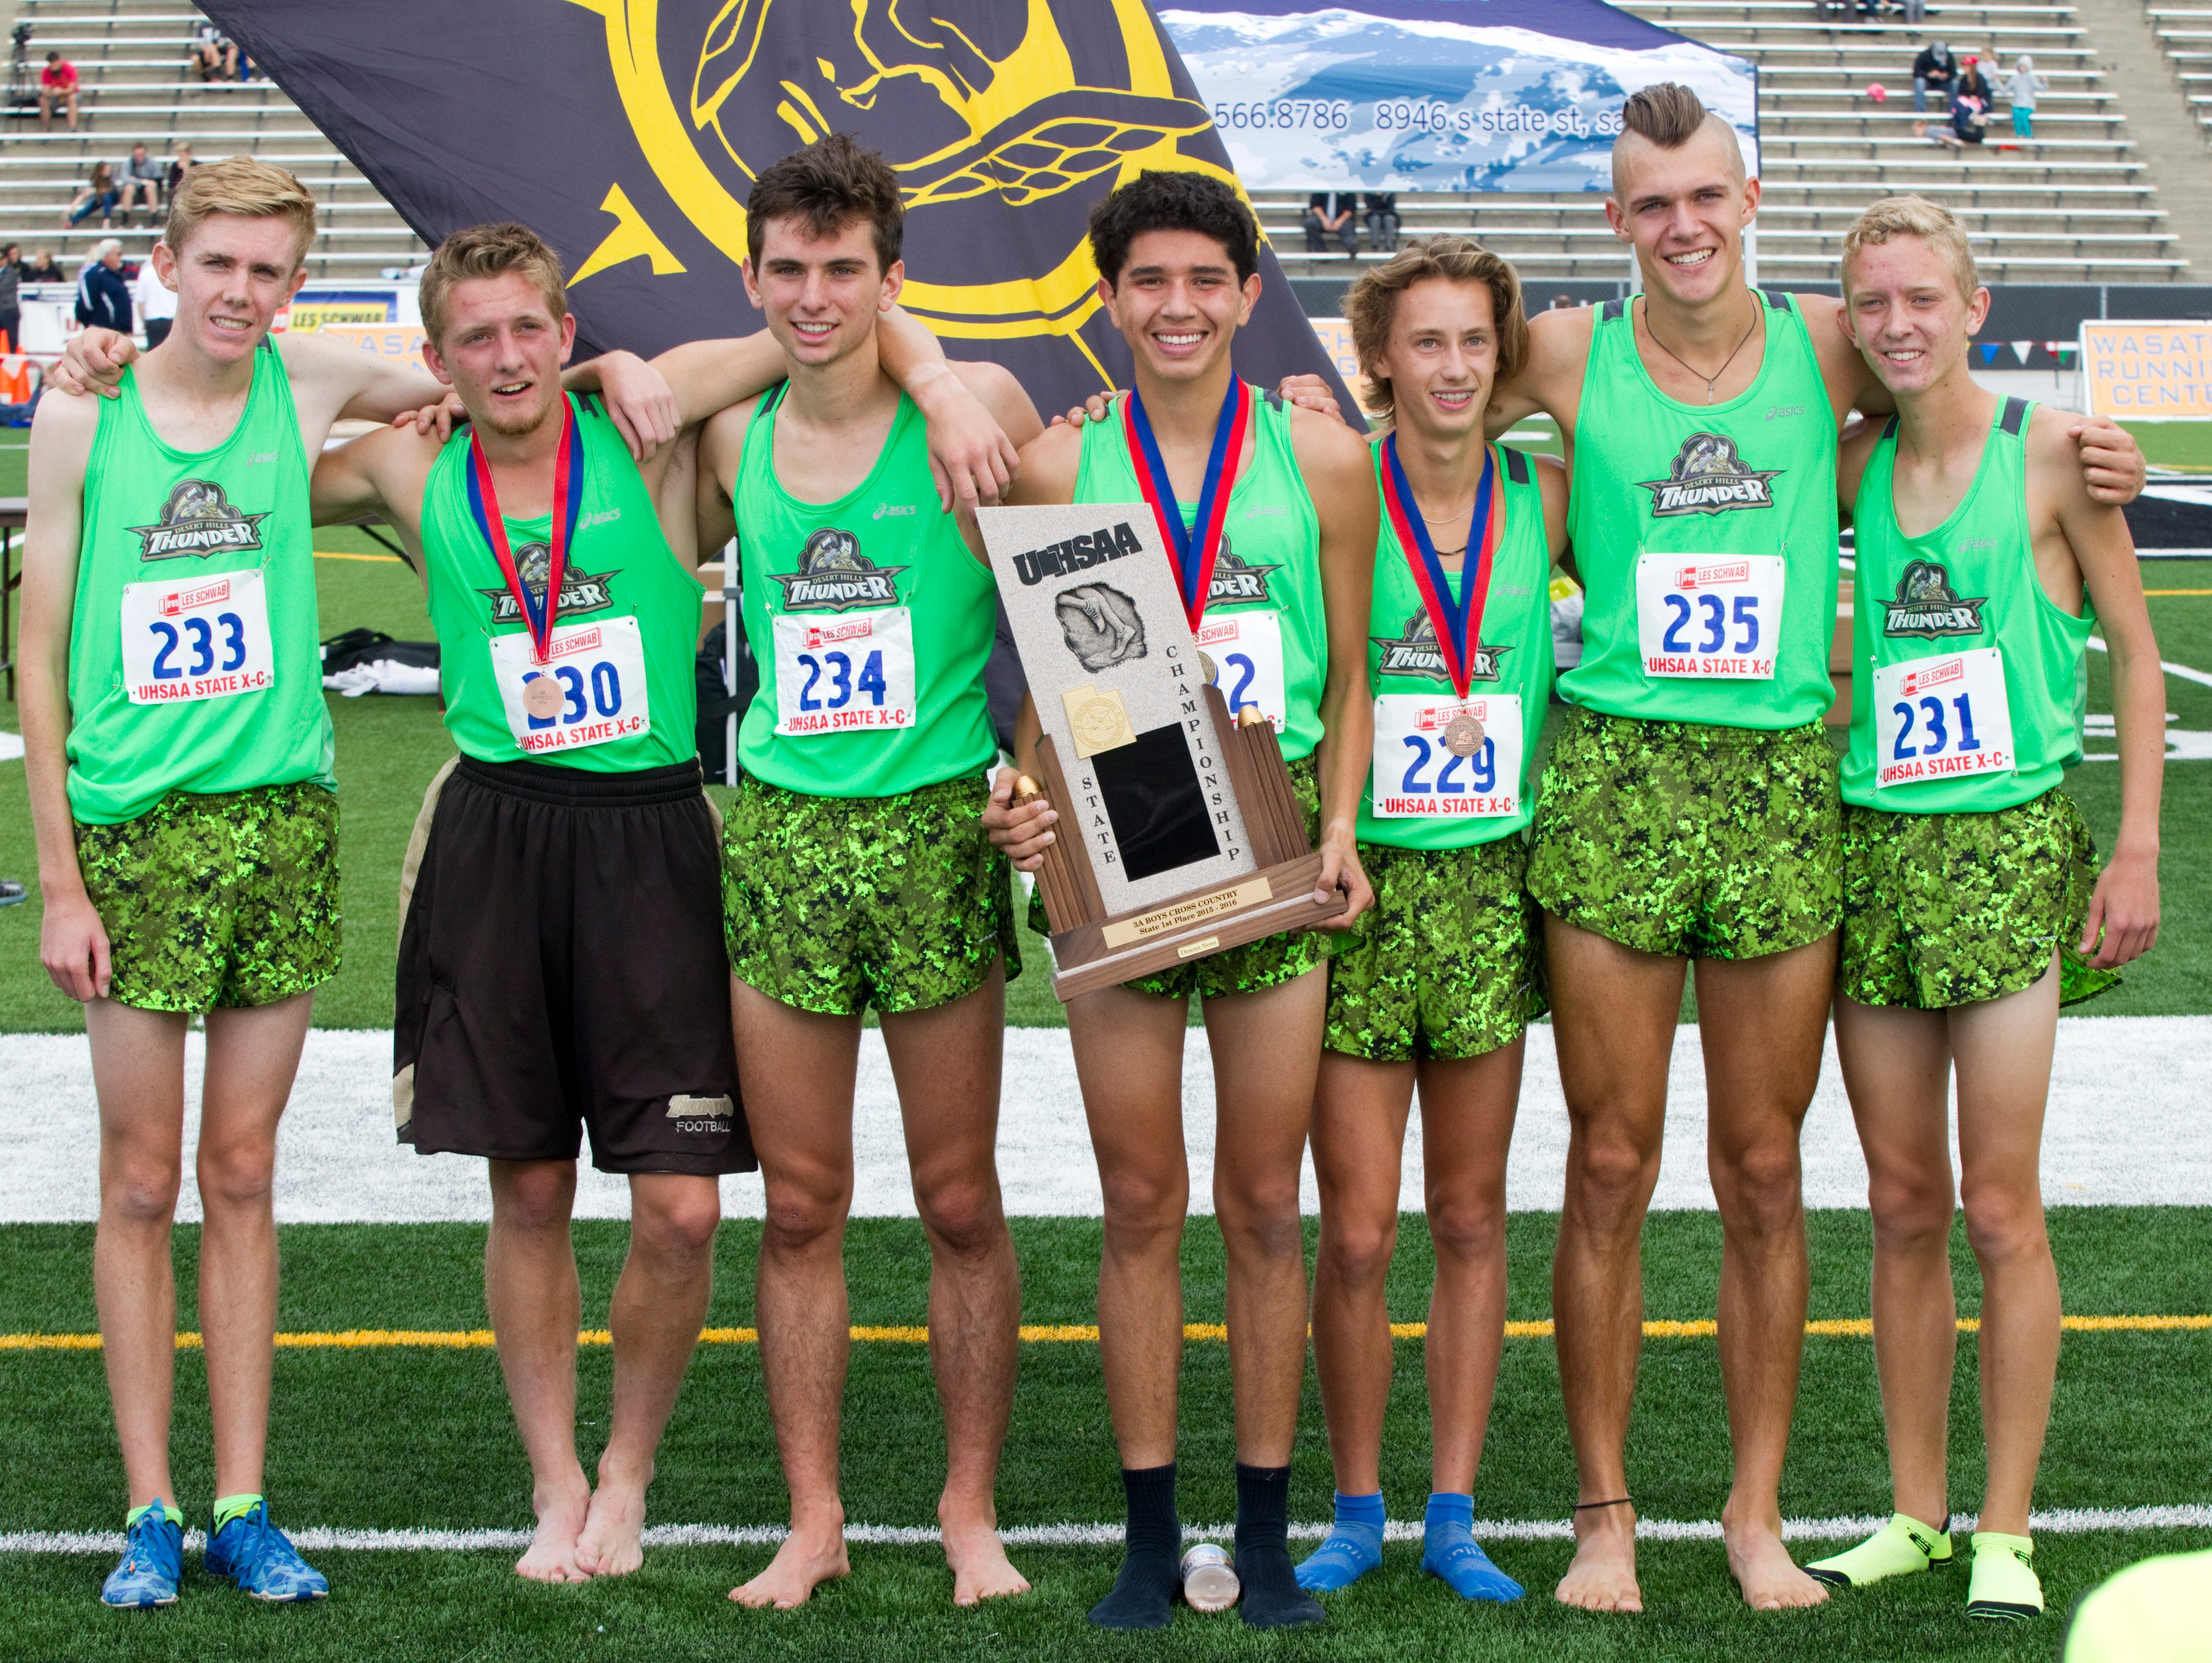 Desert Hills won yet another Boys 3A State Cross Country Championship.